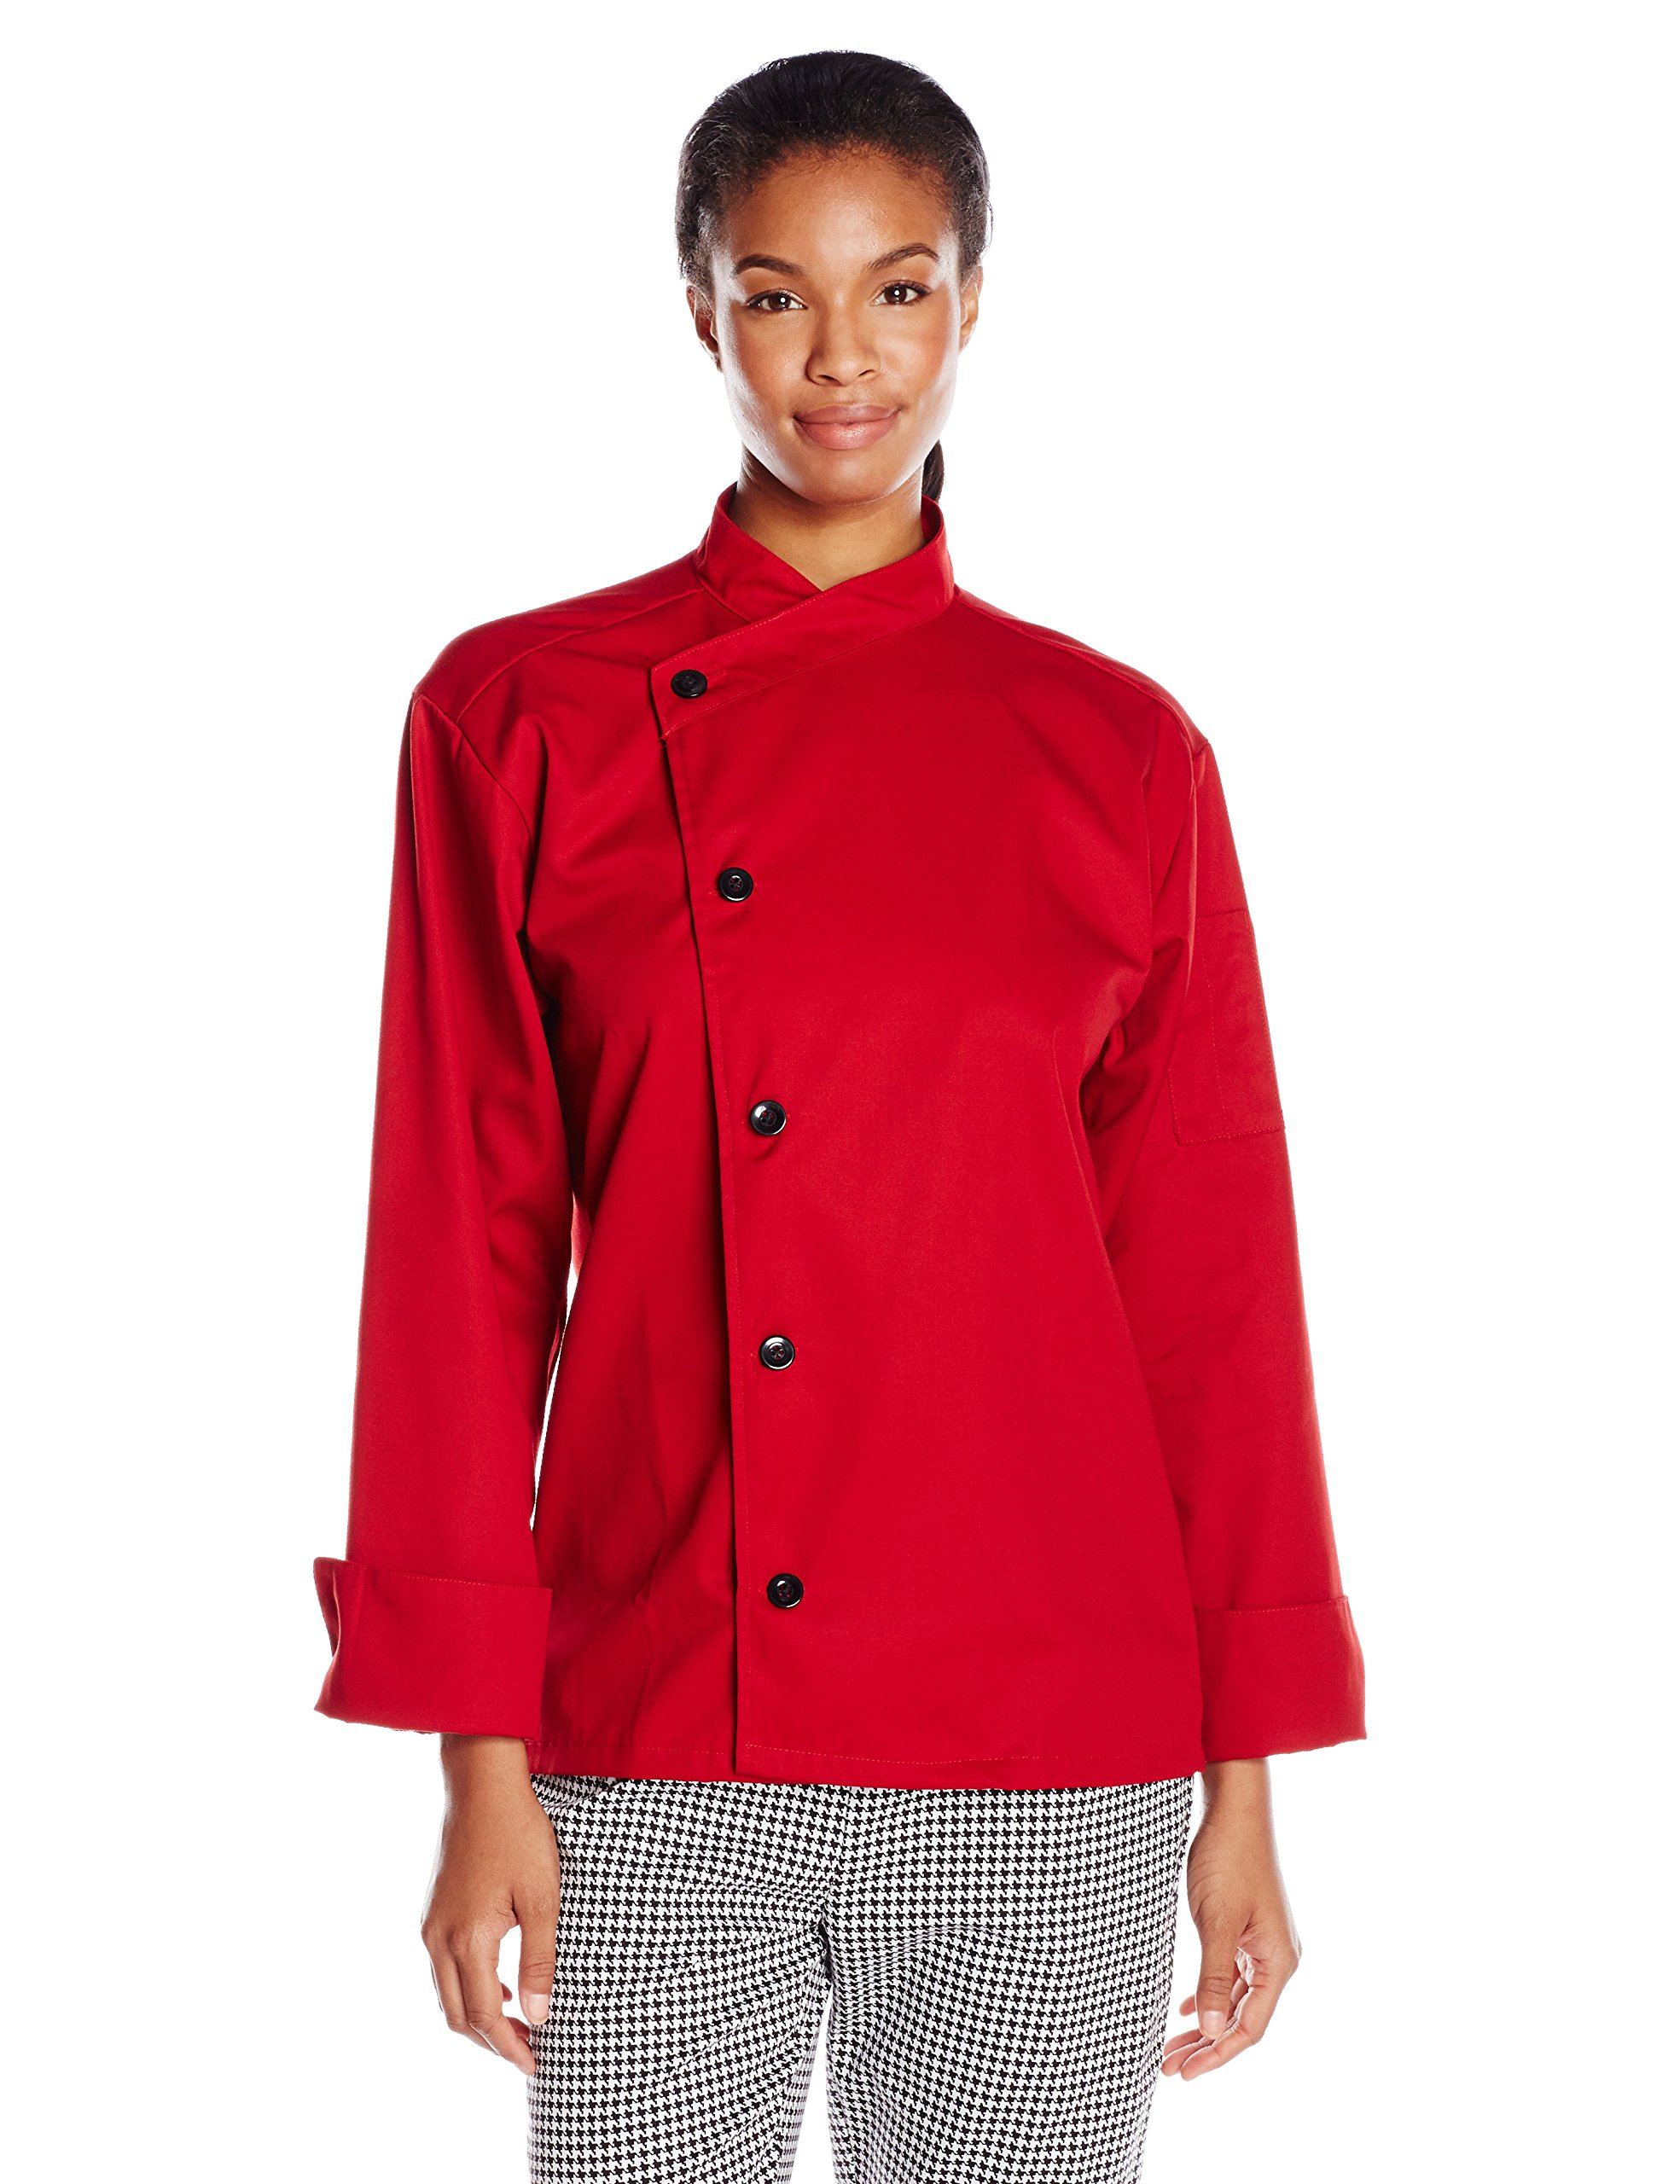 Uncommon Threads Unisex  Rio Chef Coat, Red, Large by Uncommon Threads